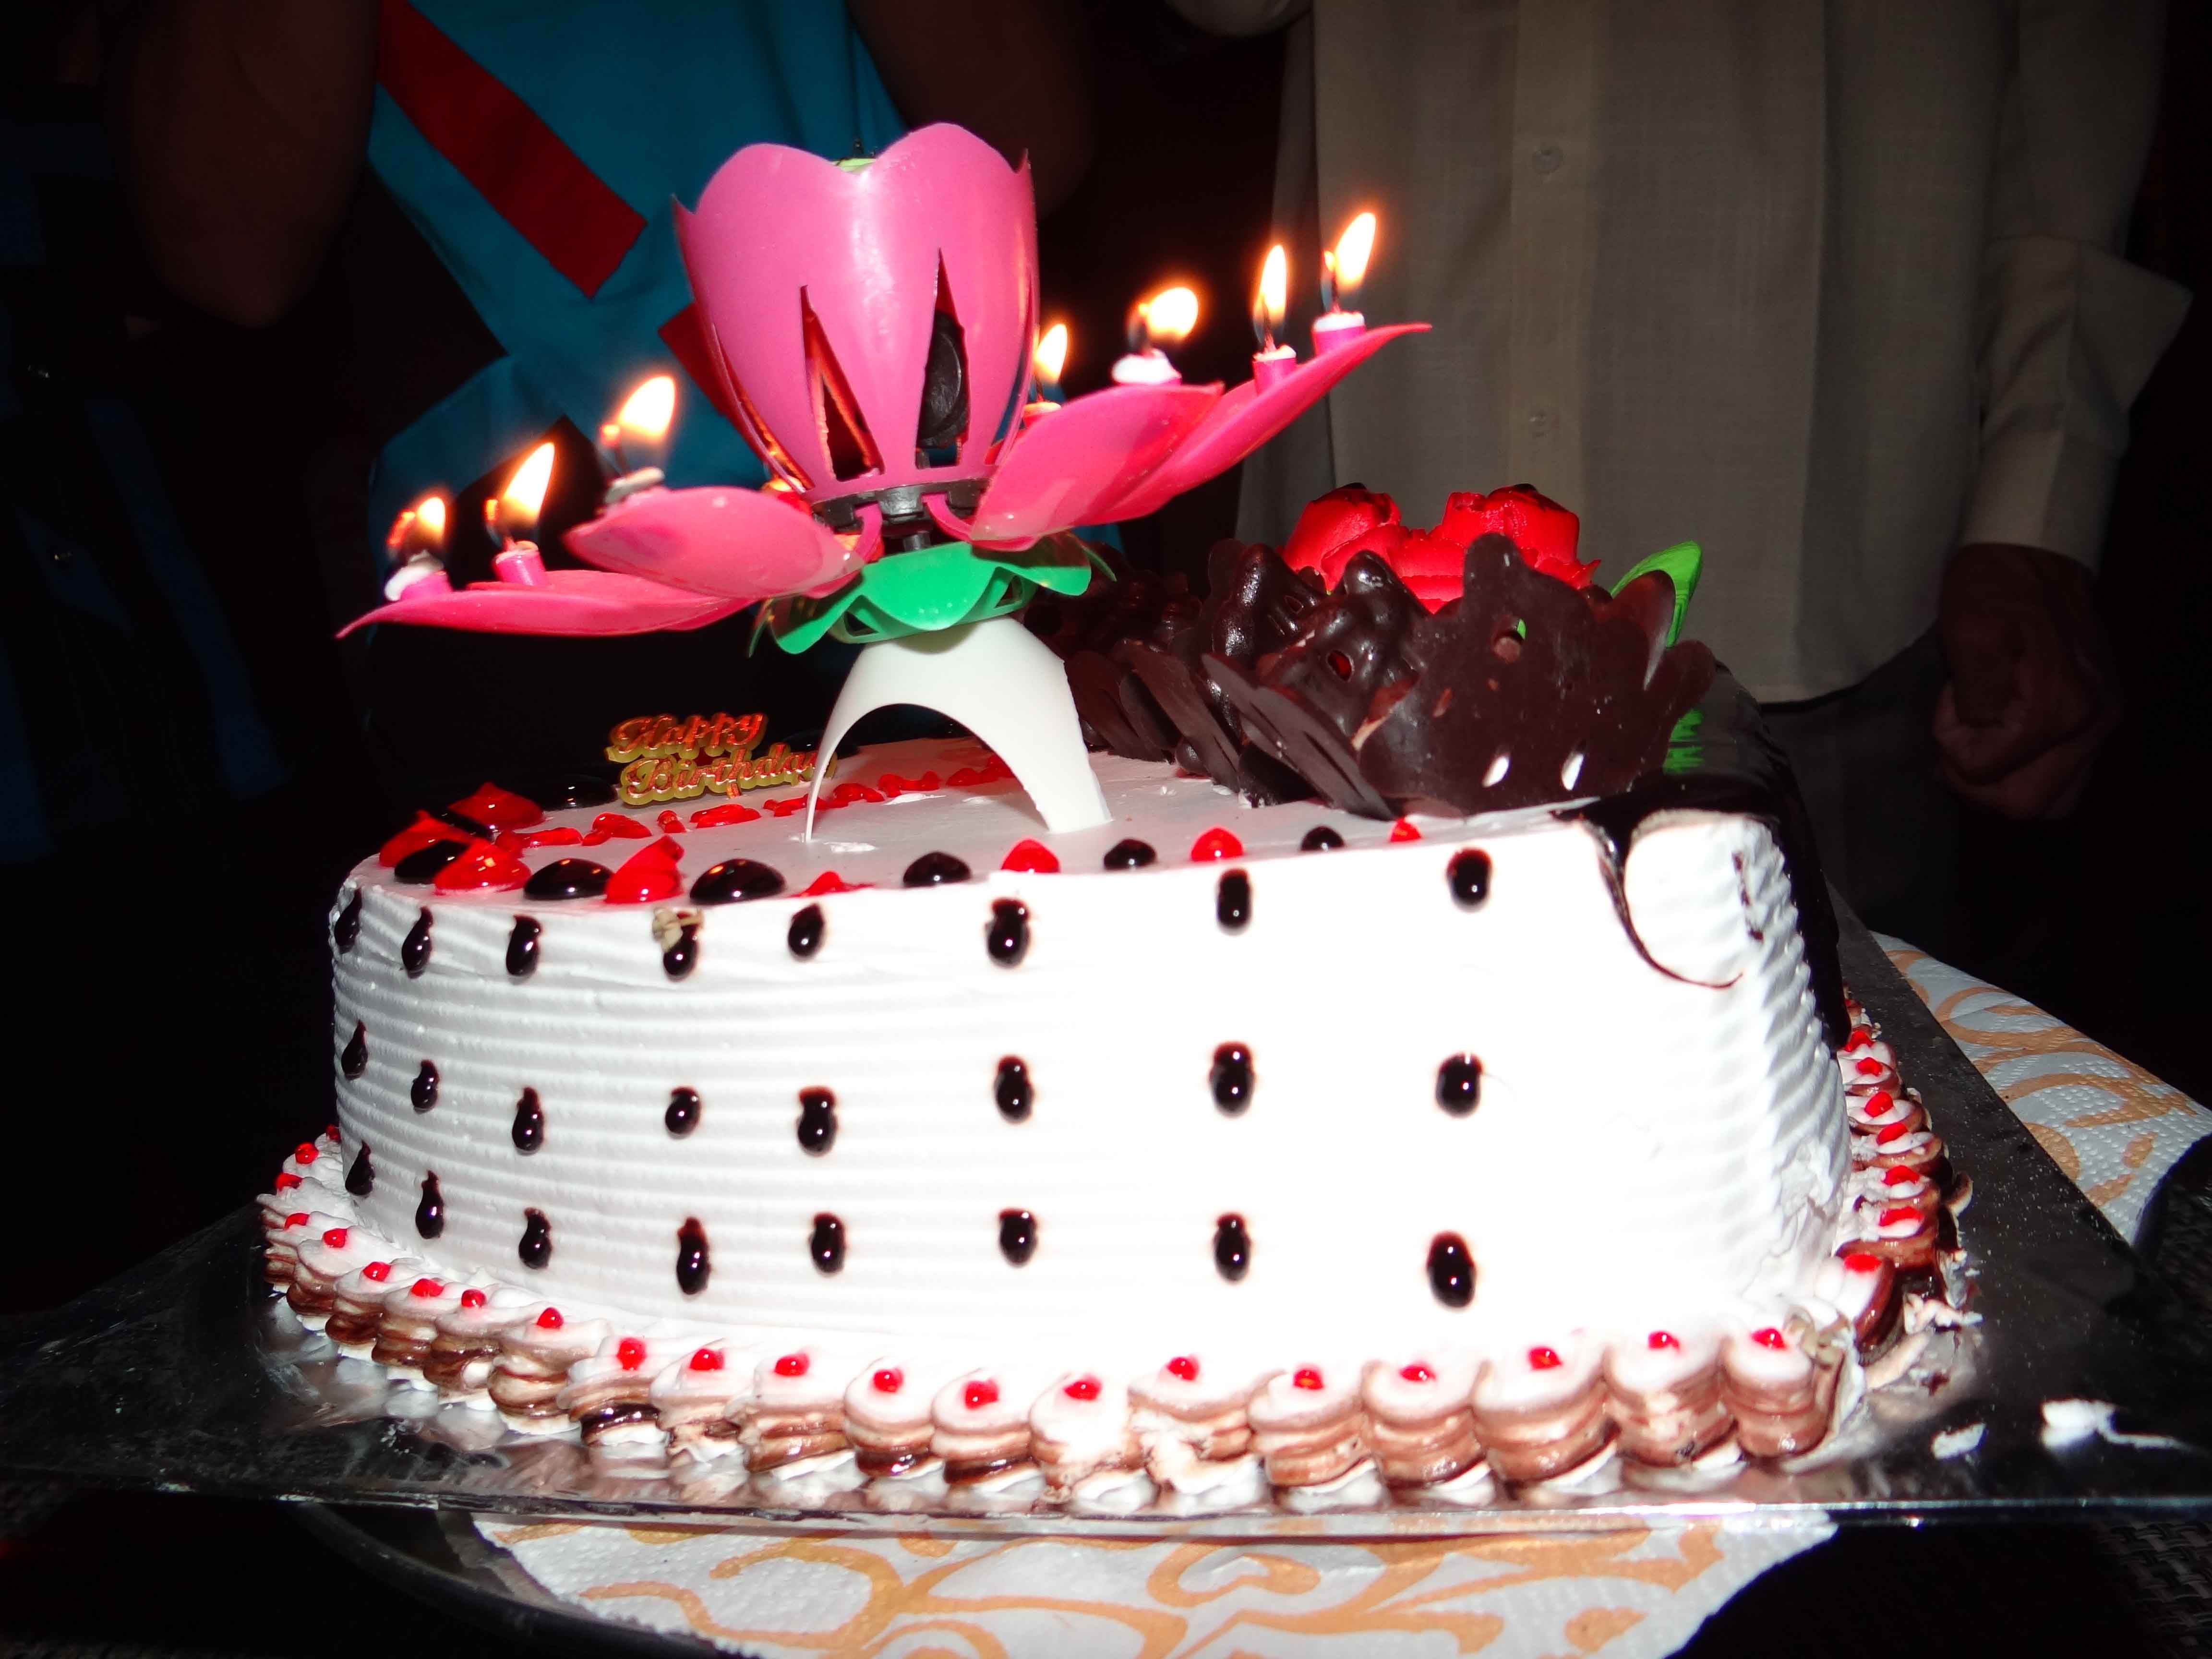 Happy Birthday Cake Wallpaper Collection For Free Download Hd